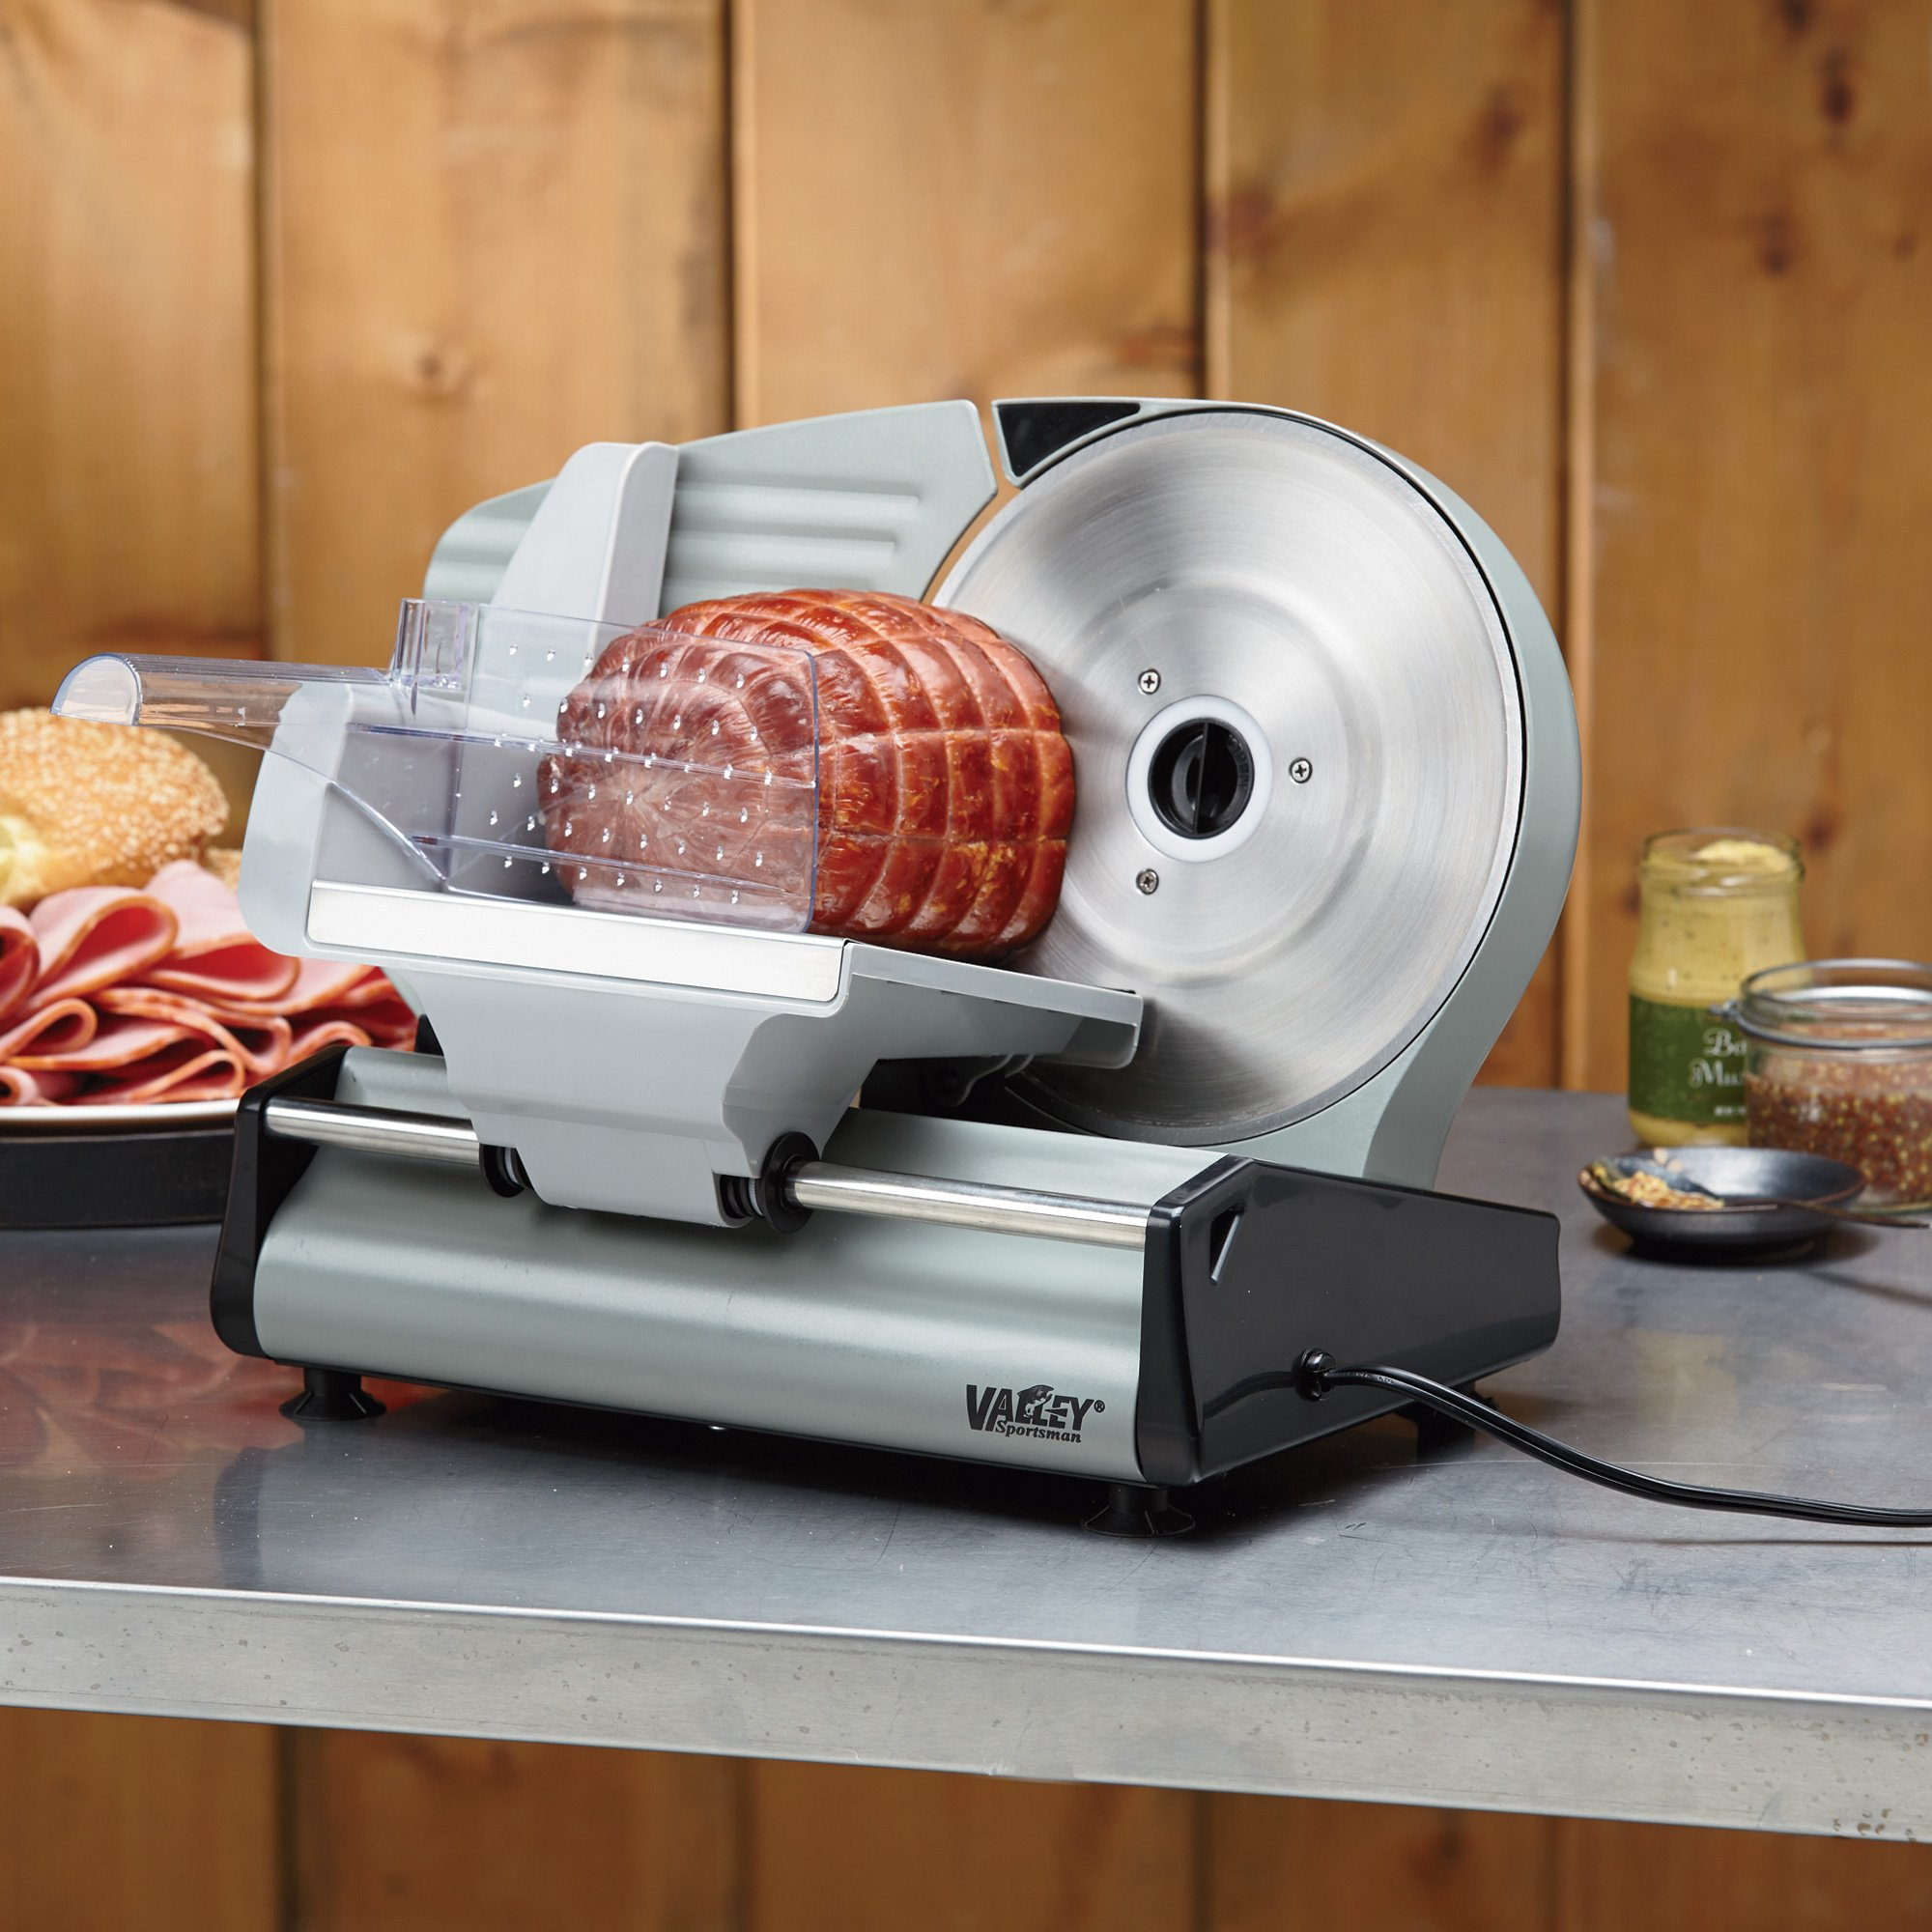 8.7in. Stainless Steel Electric Food Slicer - Suddenly Your Kitchen is a Deli by Valley Sportsman